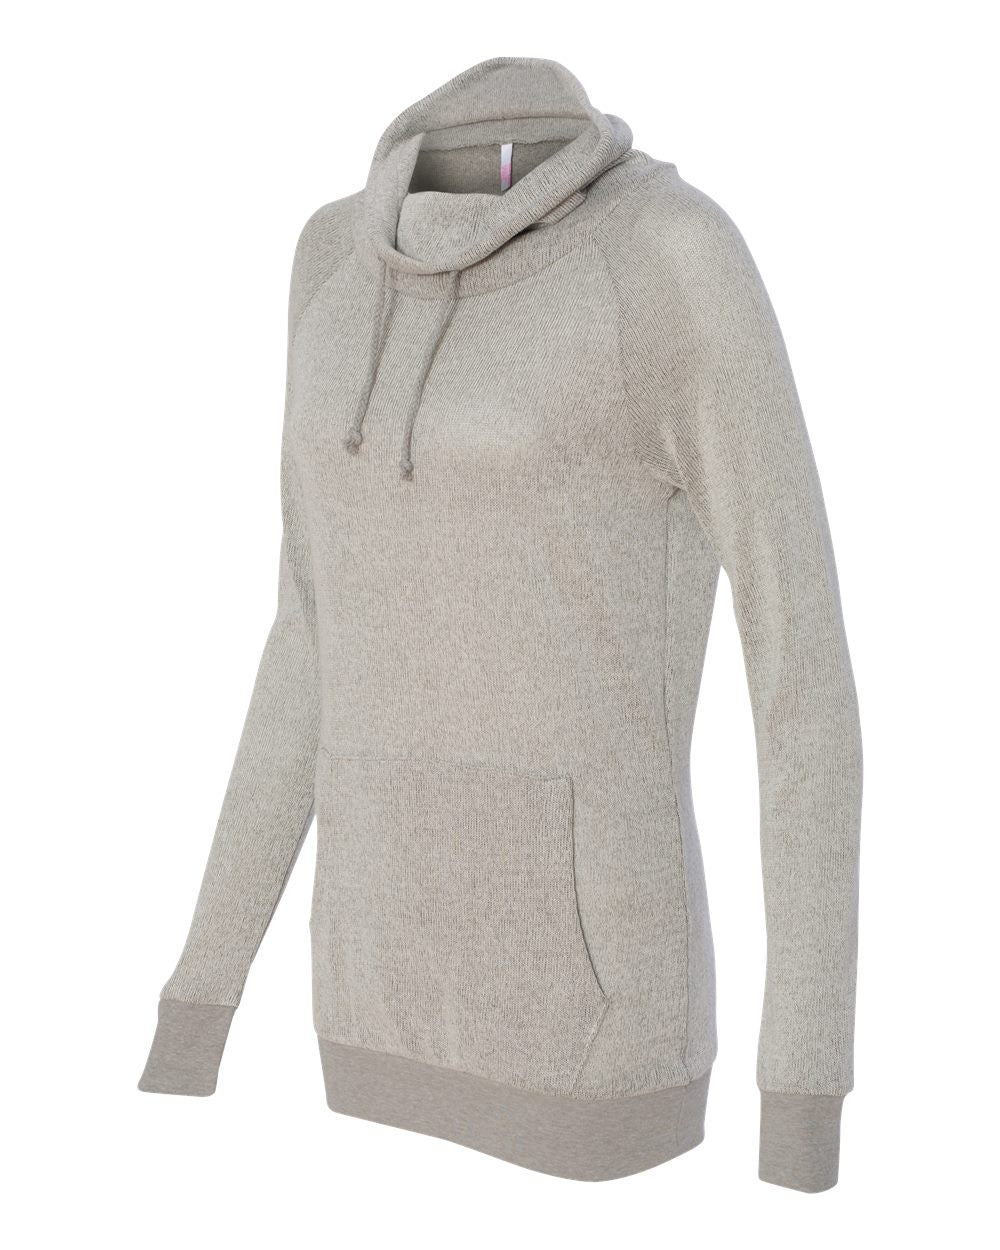 Funnel Neck Pullover for Women - Discountedrack.com